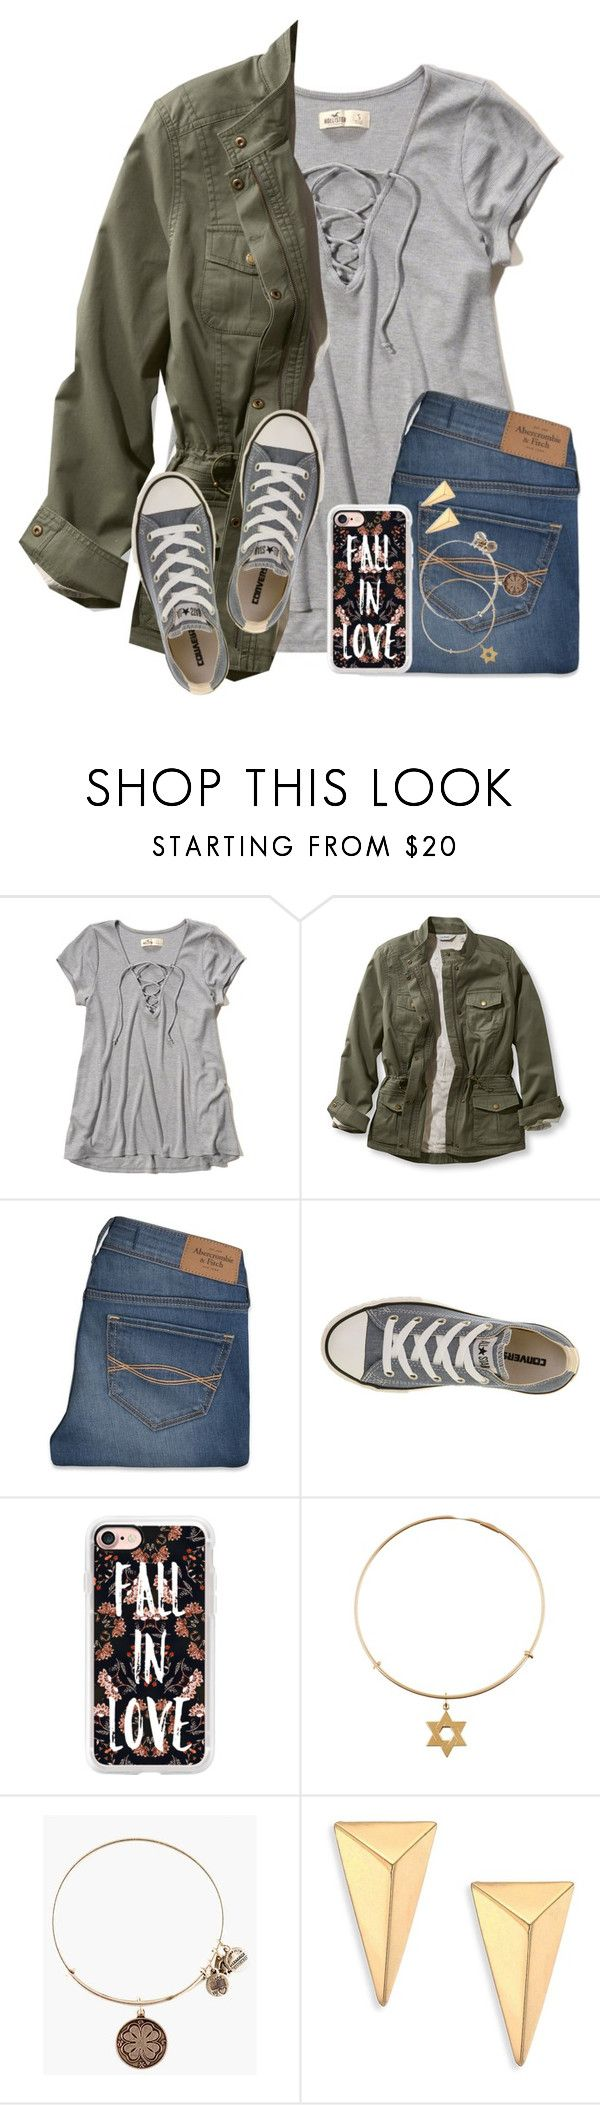 """""""I Dunno About This Outfit...But Eh Whatever"""" by twaayy ❤ liked on Polyvore featuring Hollister Co., L.L.Bean, Abercrombie & Fitch, Converse, Casetify, Alex and Ani and Alexis Bittar"""